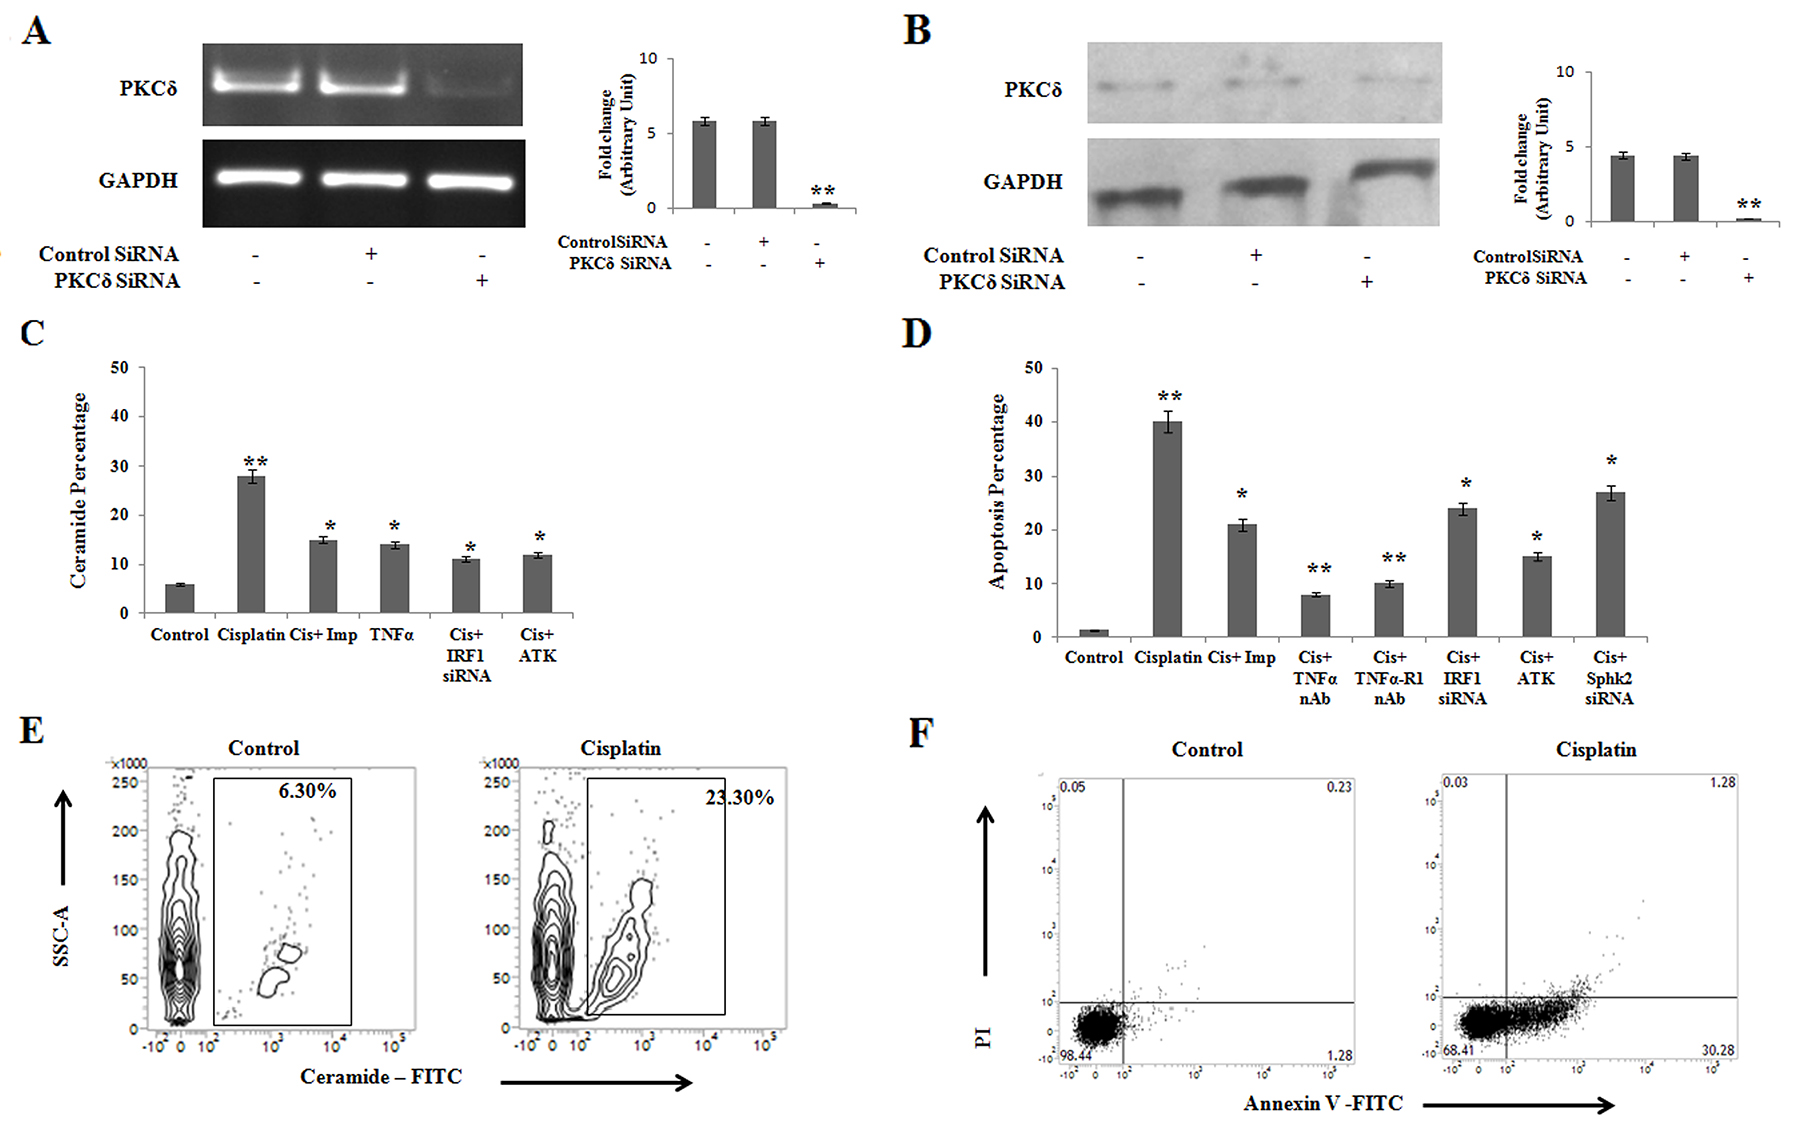 Cisplatin treatment in PKCδ silenced A375 human melanoma cells induces ceramide mediated apoptosis through IRF1-TNFα axis.